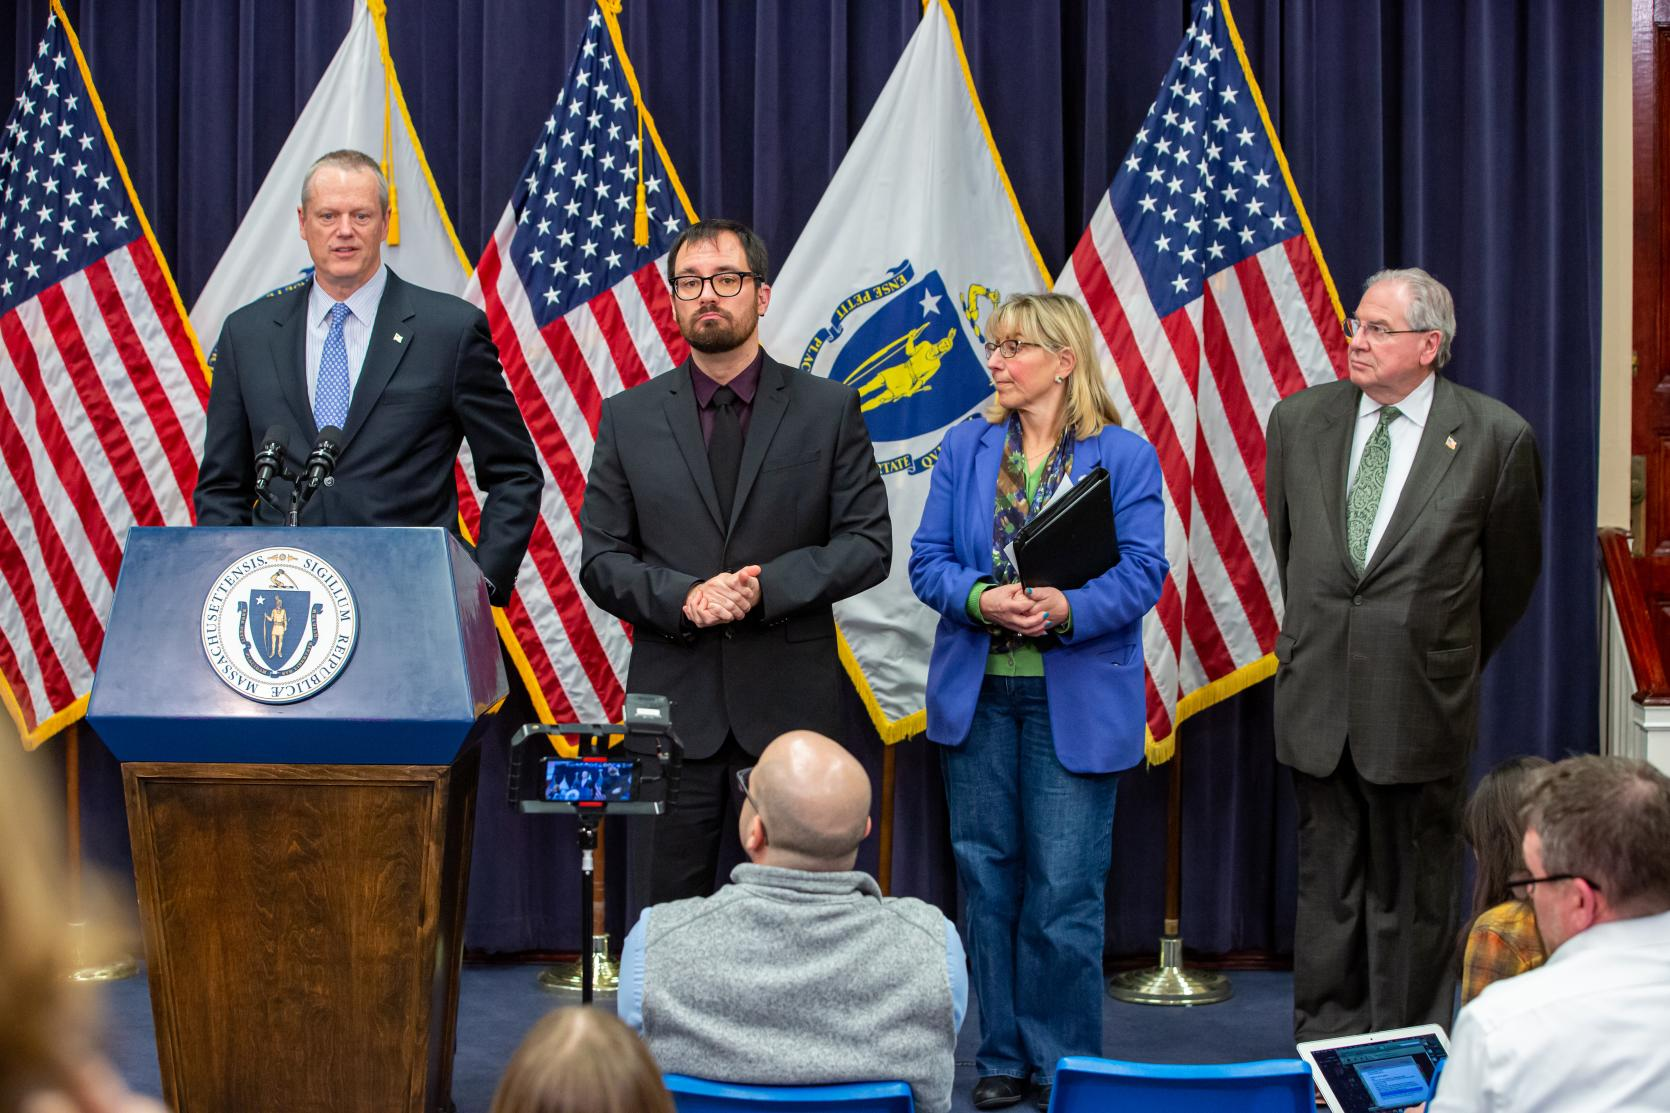 Baker-Polito Administration Announces $10 Million Small Business Recovery Loan Fund